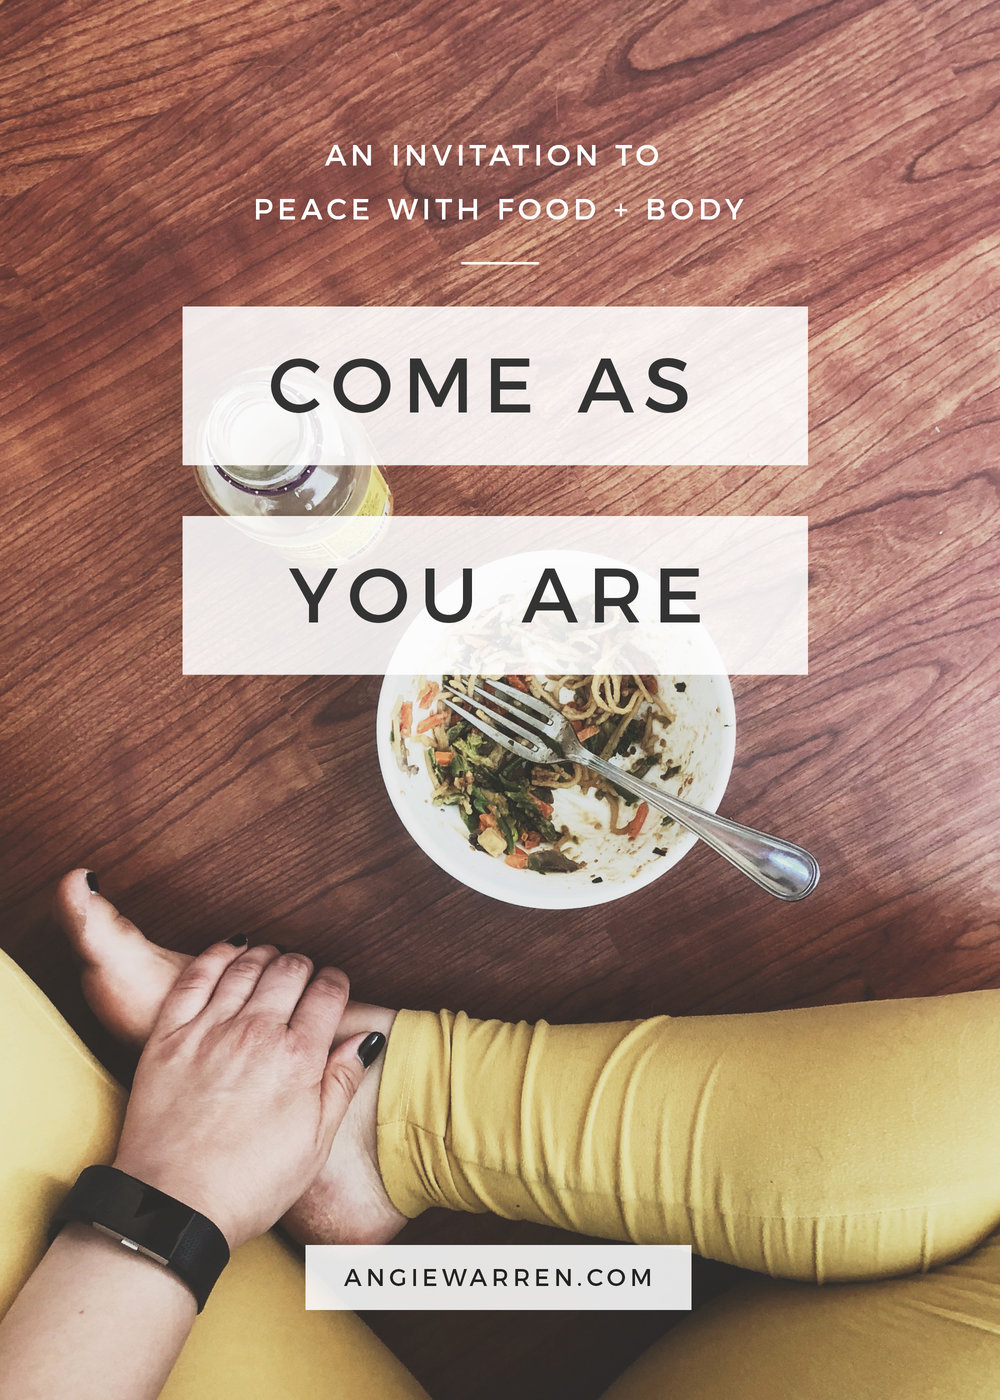 Come As You Are - An Invitation to Peace with Food + Body - Intuitive Eating - www.angiewarren.com